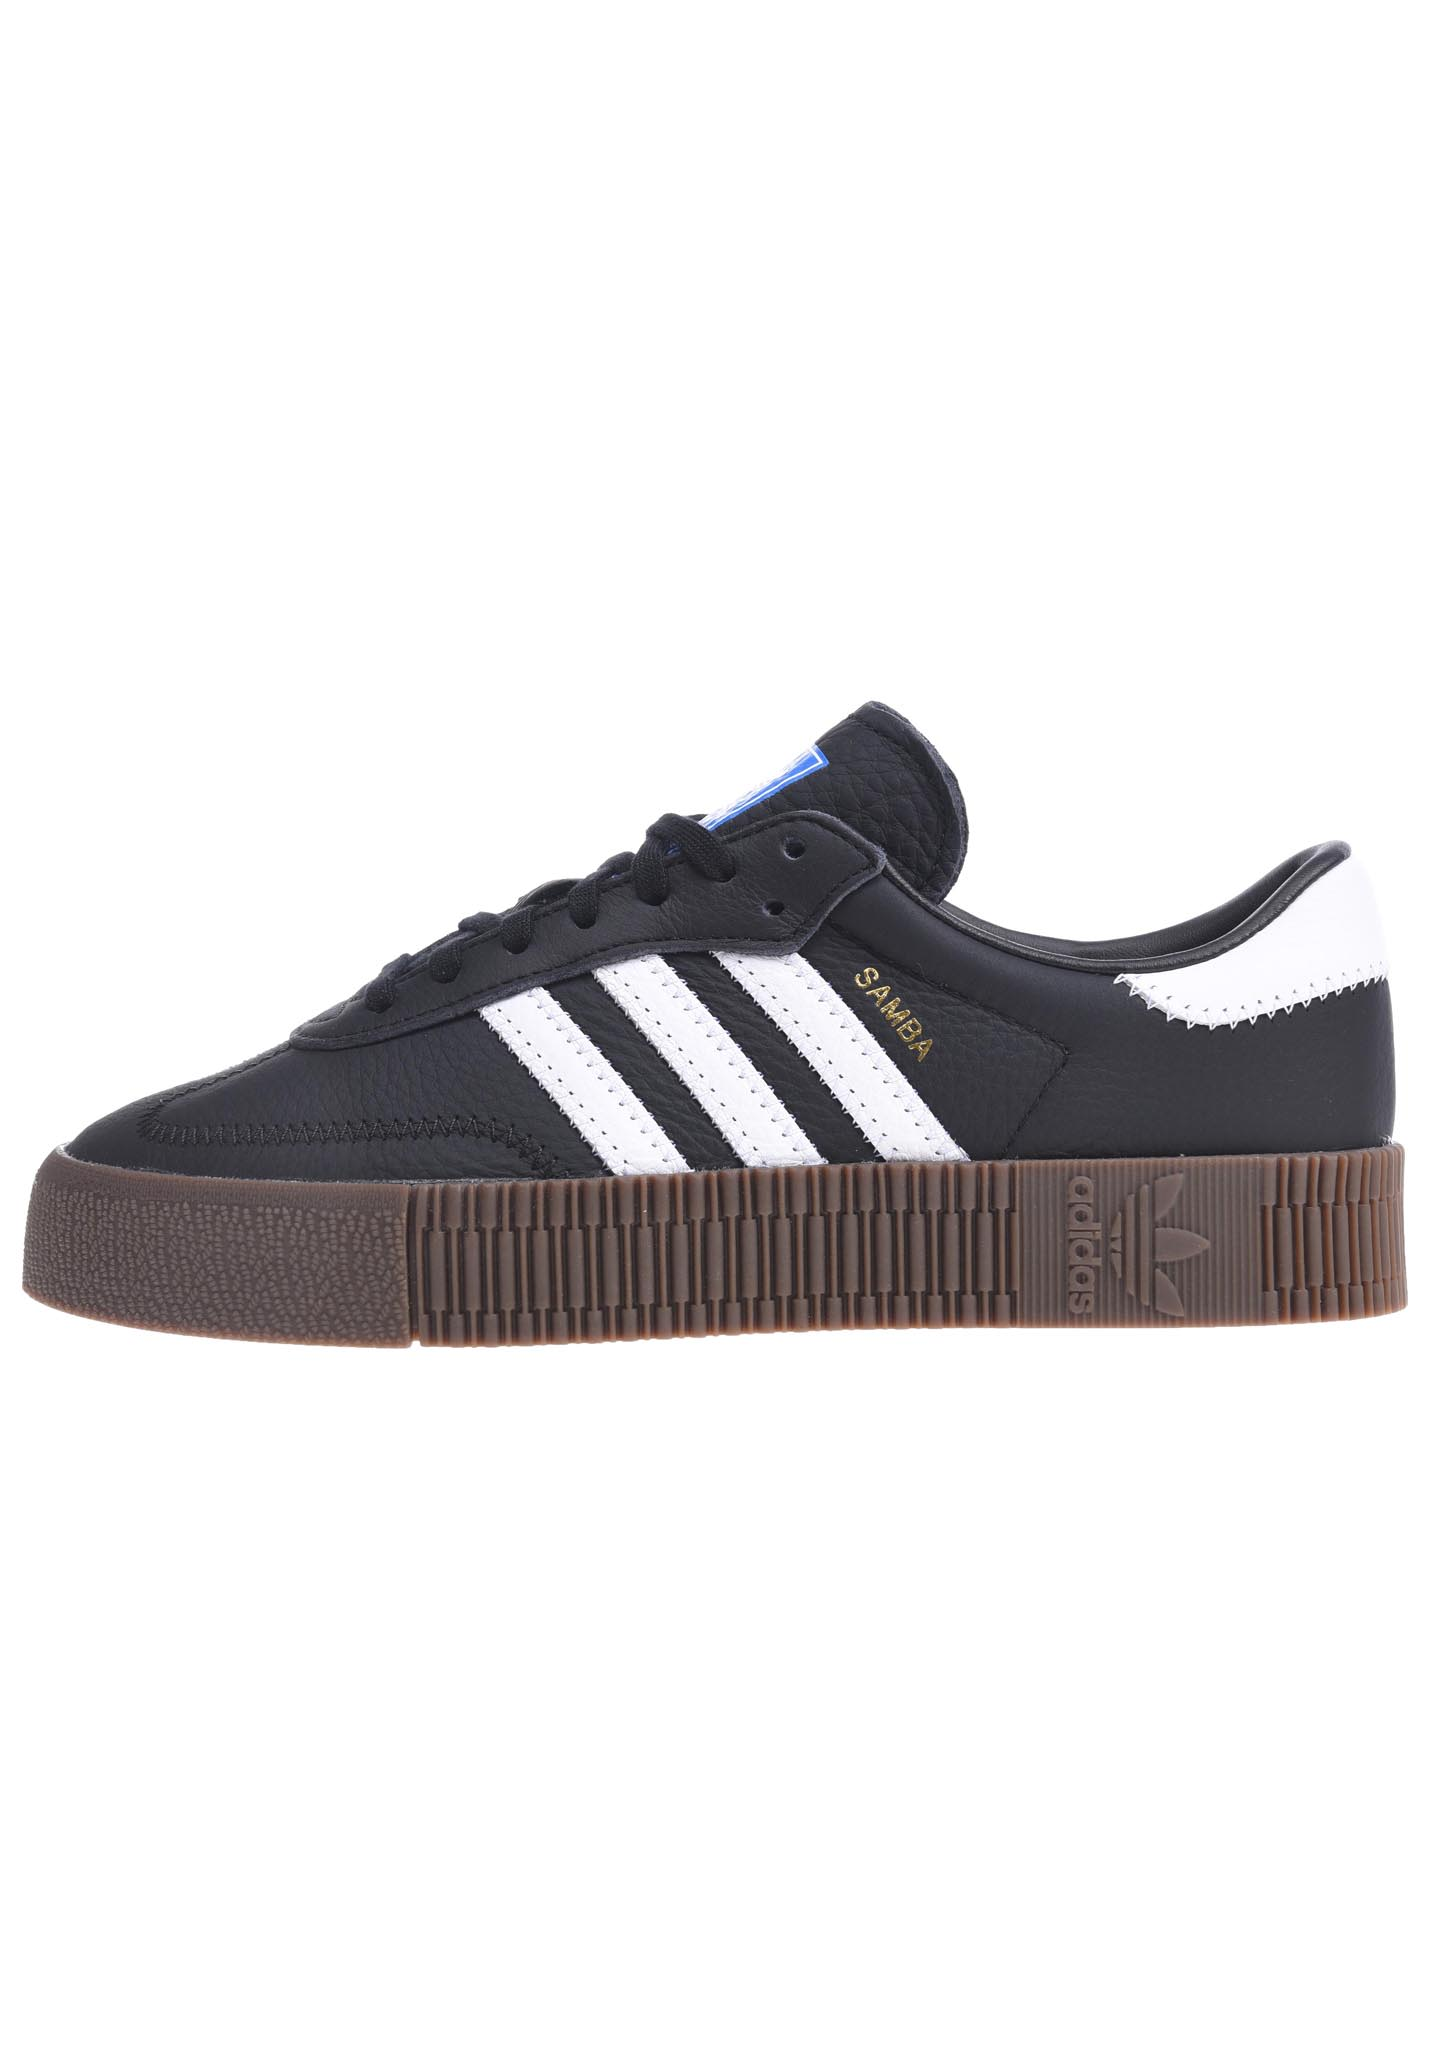 0403815f5cefee ADIDAS ORIGINALS Sambarose - Sneakers for Women - Black - Planet Sports